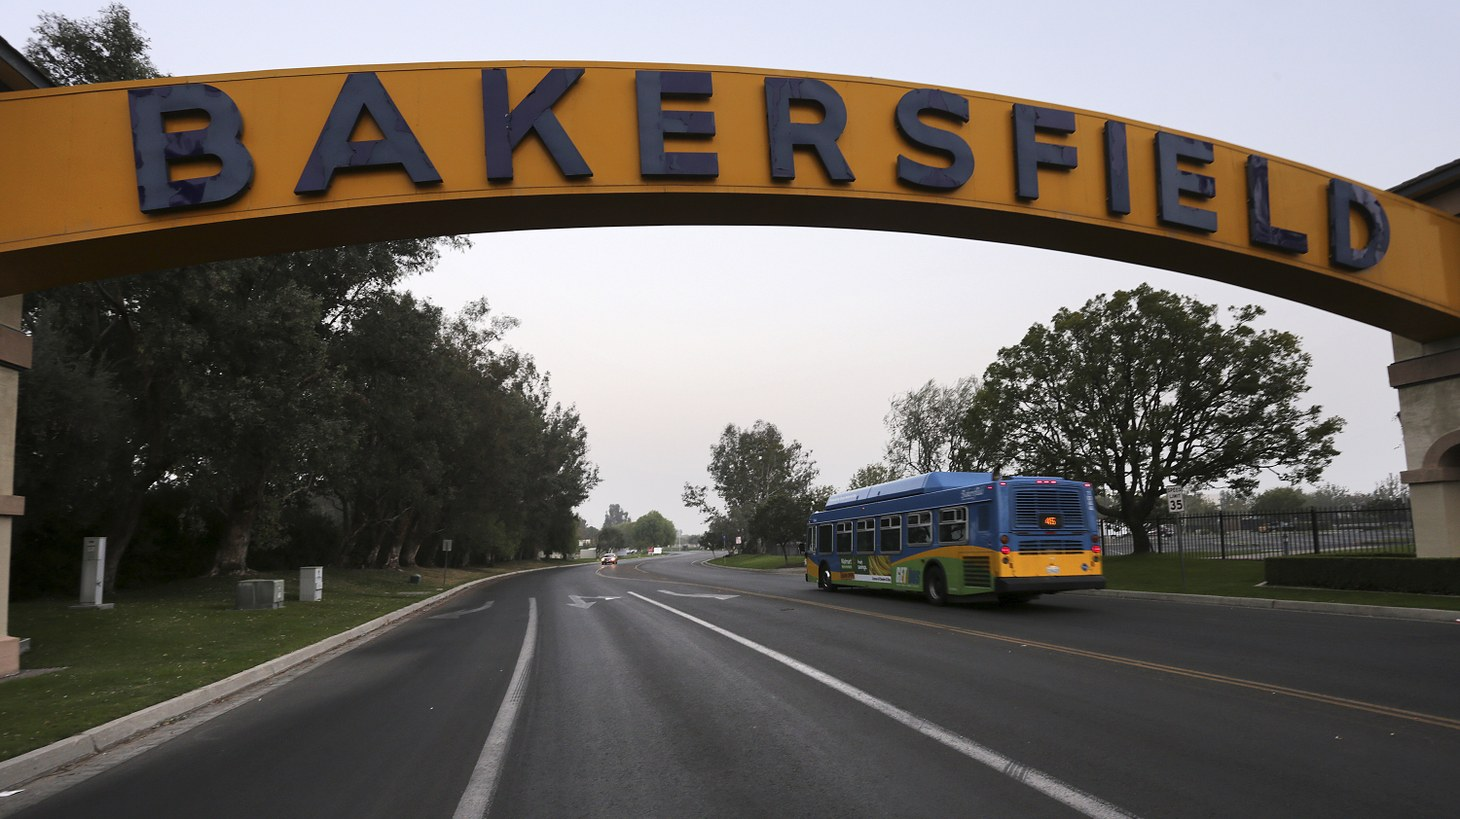 The Bakersfield Sign is something of a local icon. The archway is visible from State Route 99 and was first built in 1949.